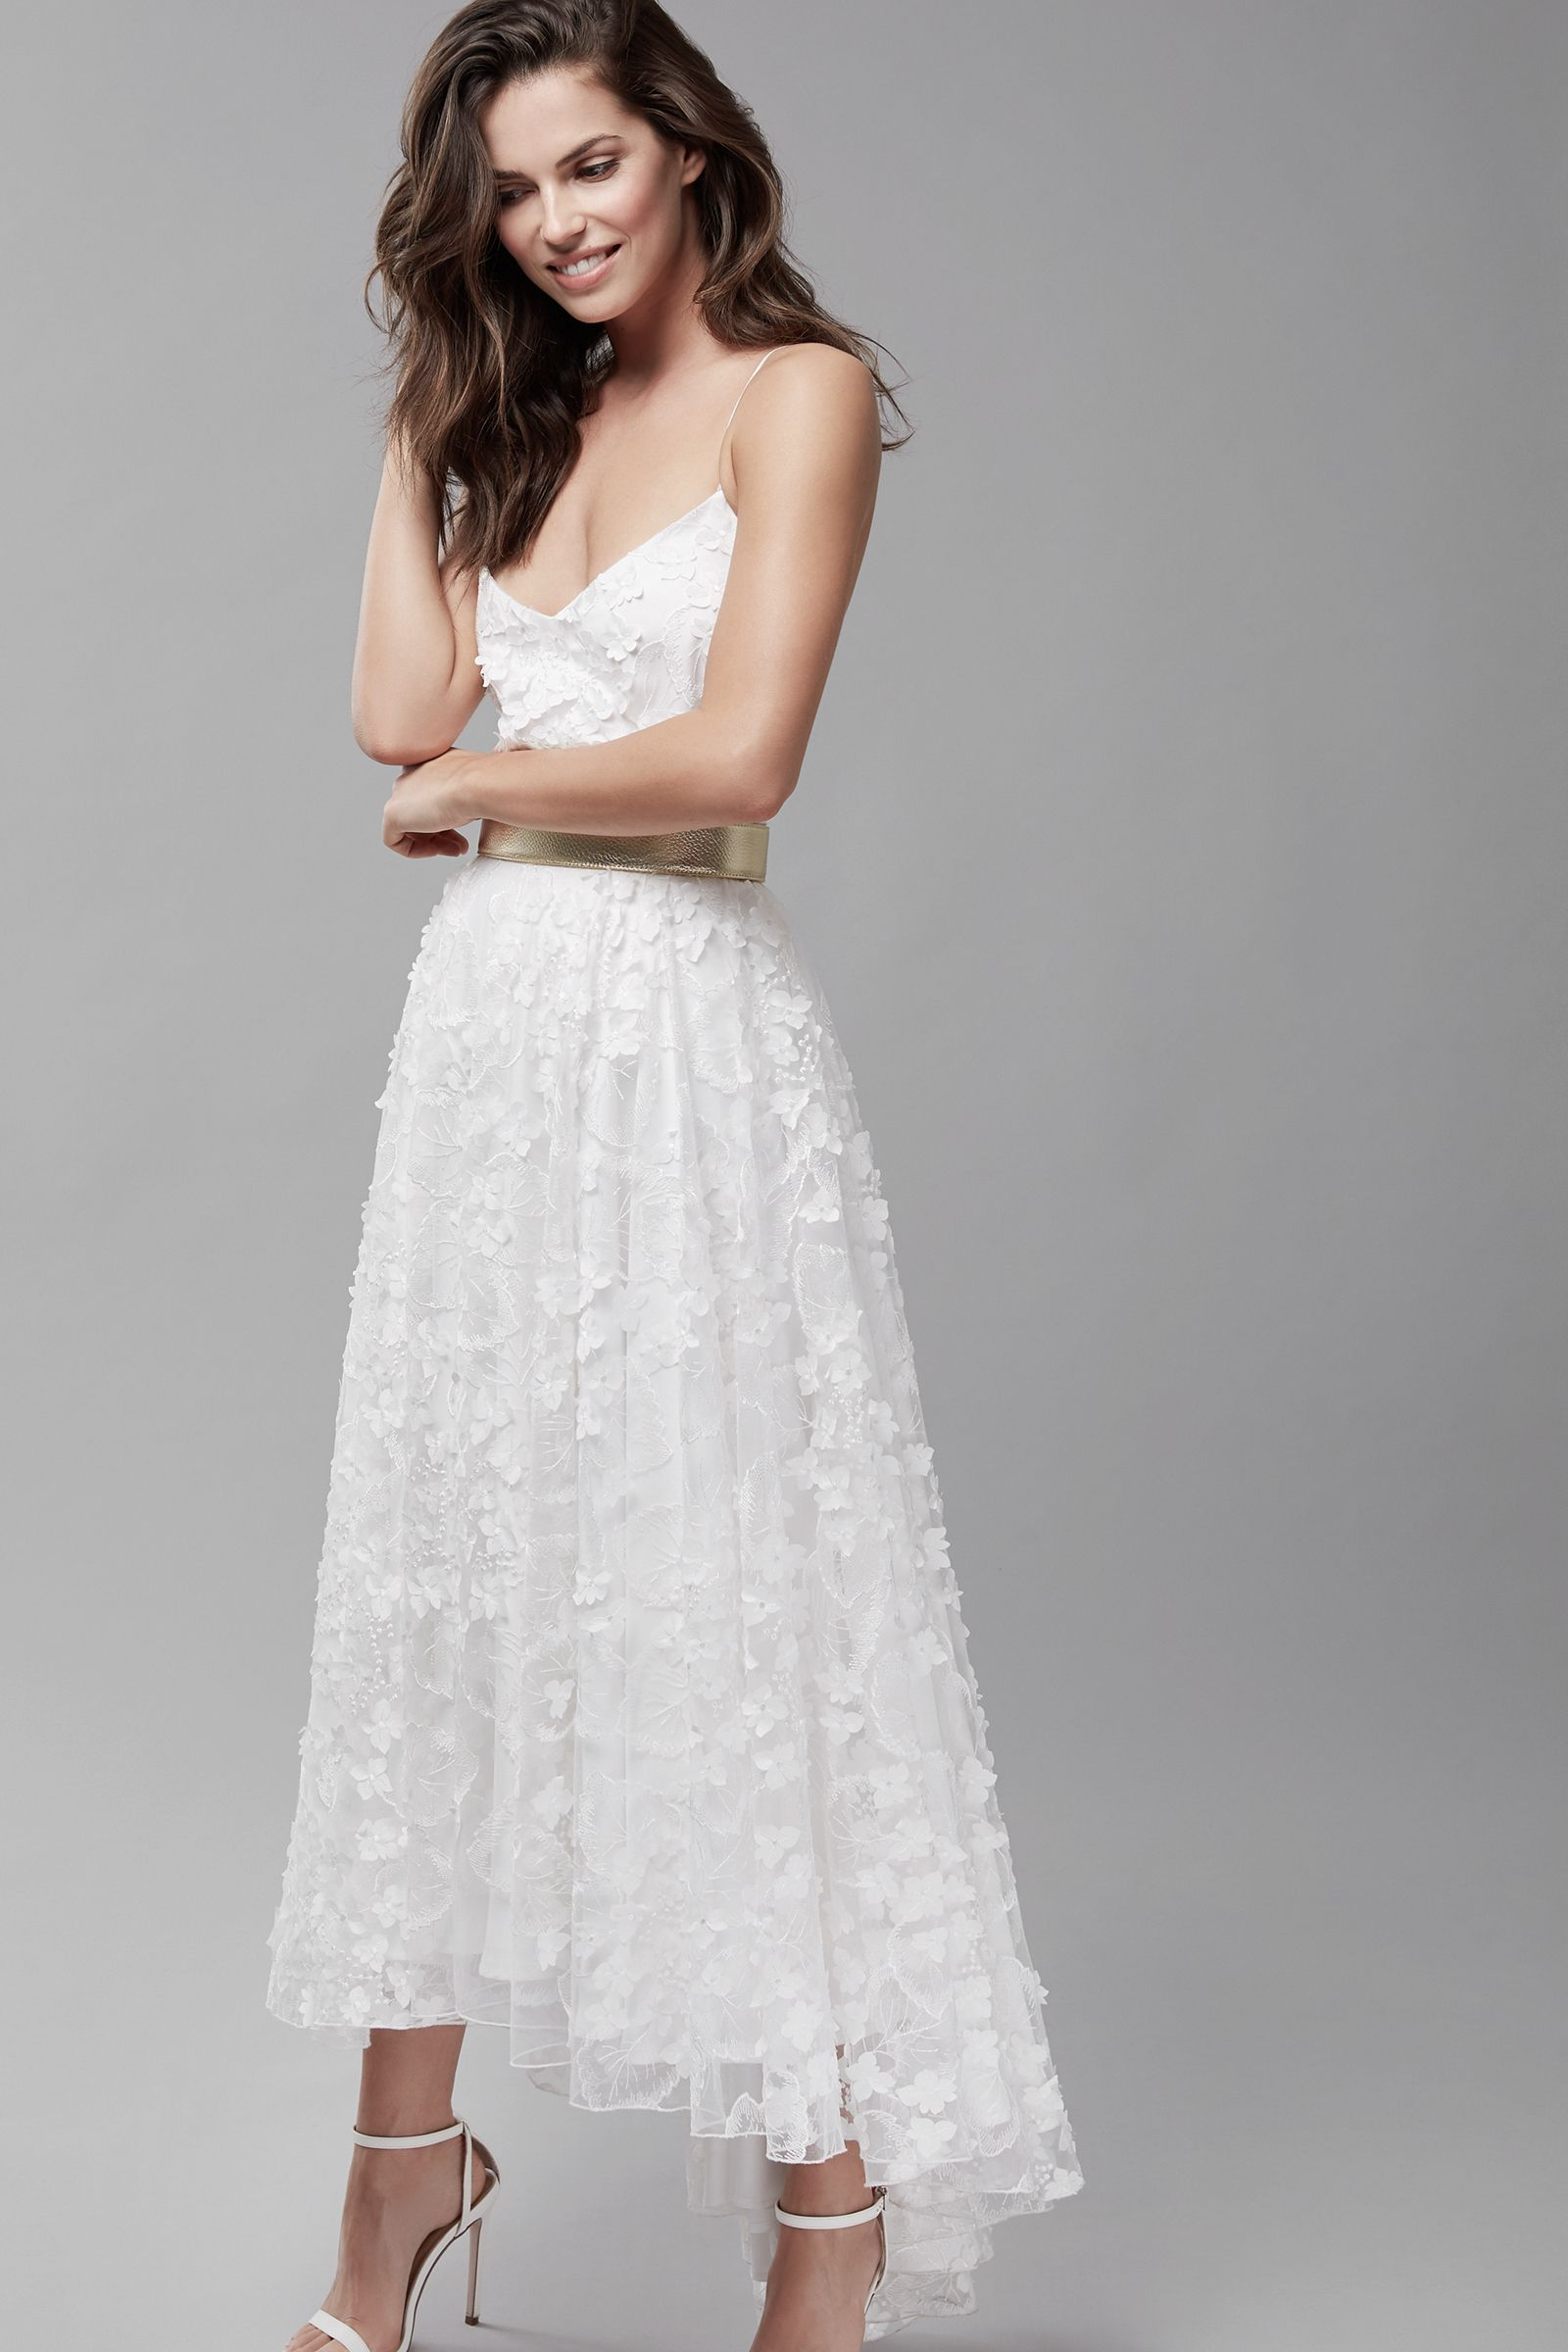 Mix&match your perfect wedding dress, ivory tulle with delicate 14D